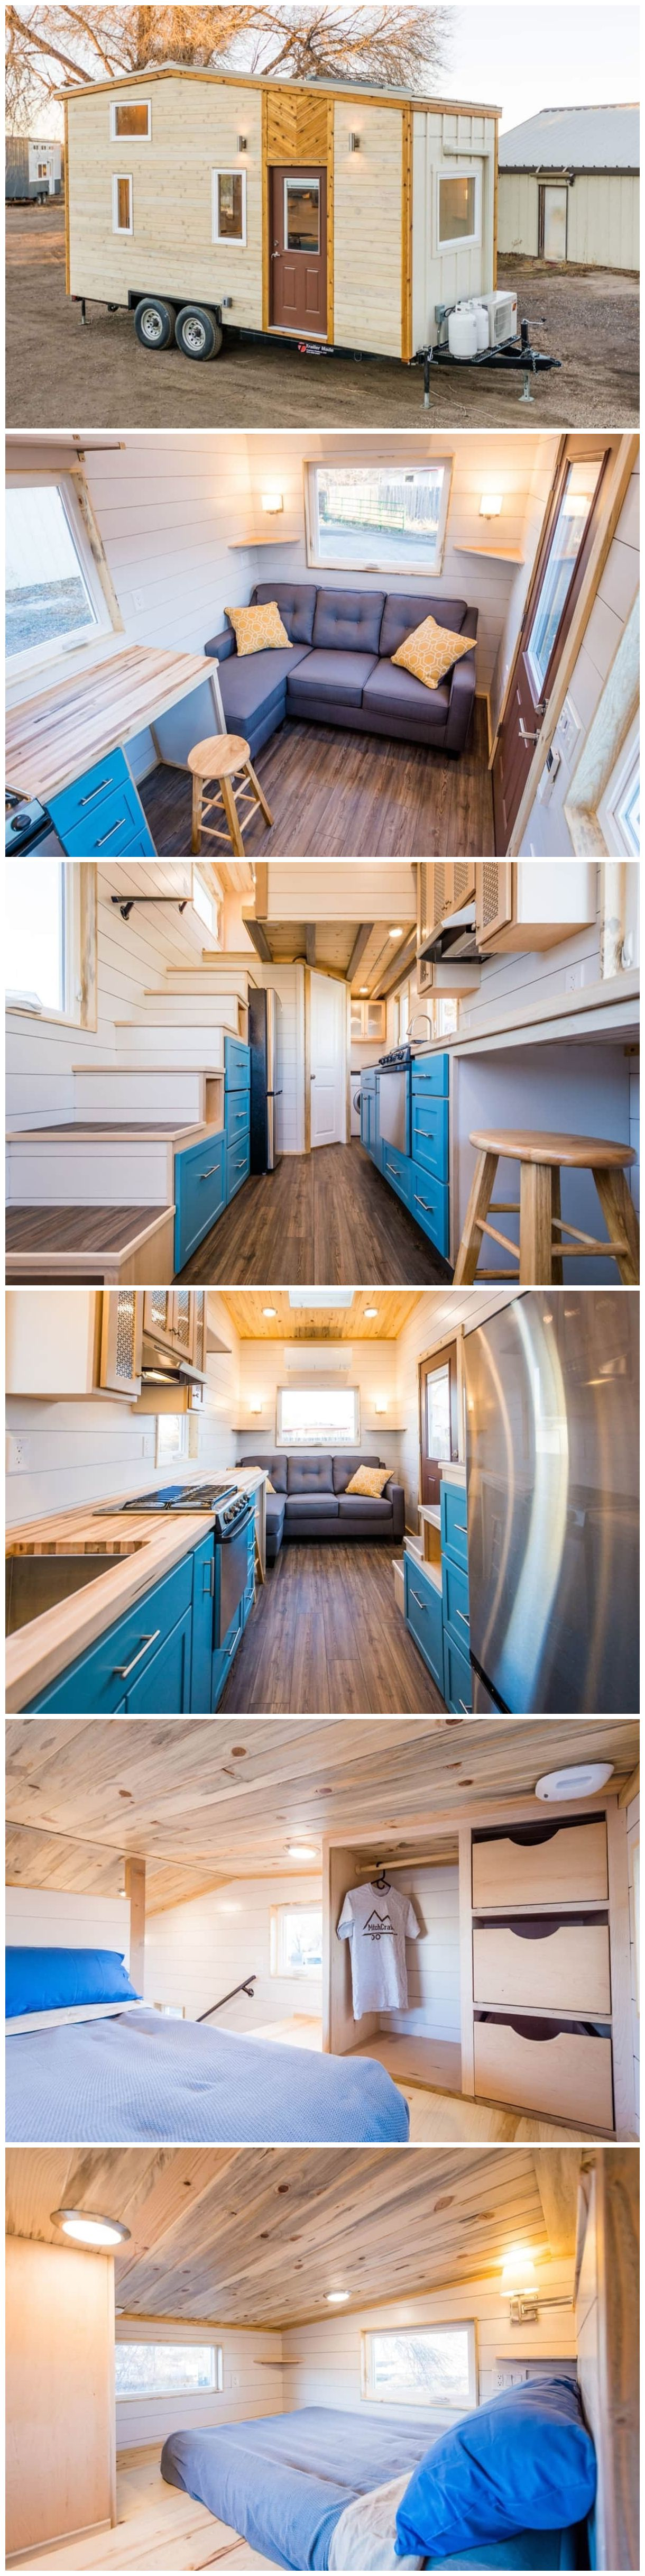 Luxury 20 Tiny Home For Sale Tiny Houses For Sale Tiny House Tiny House Design